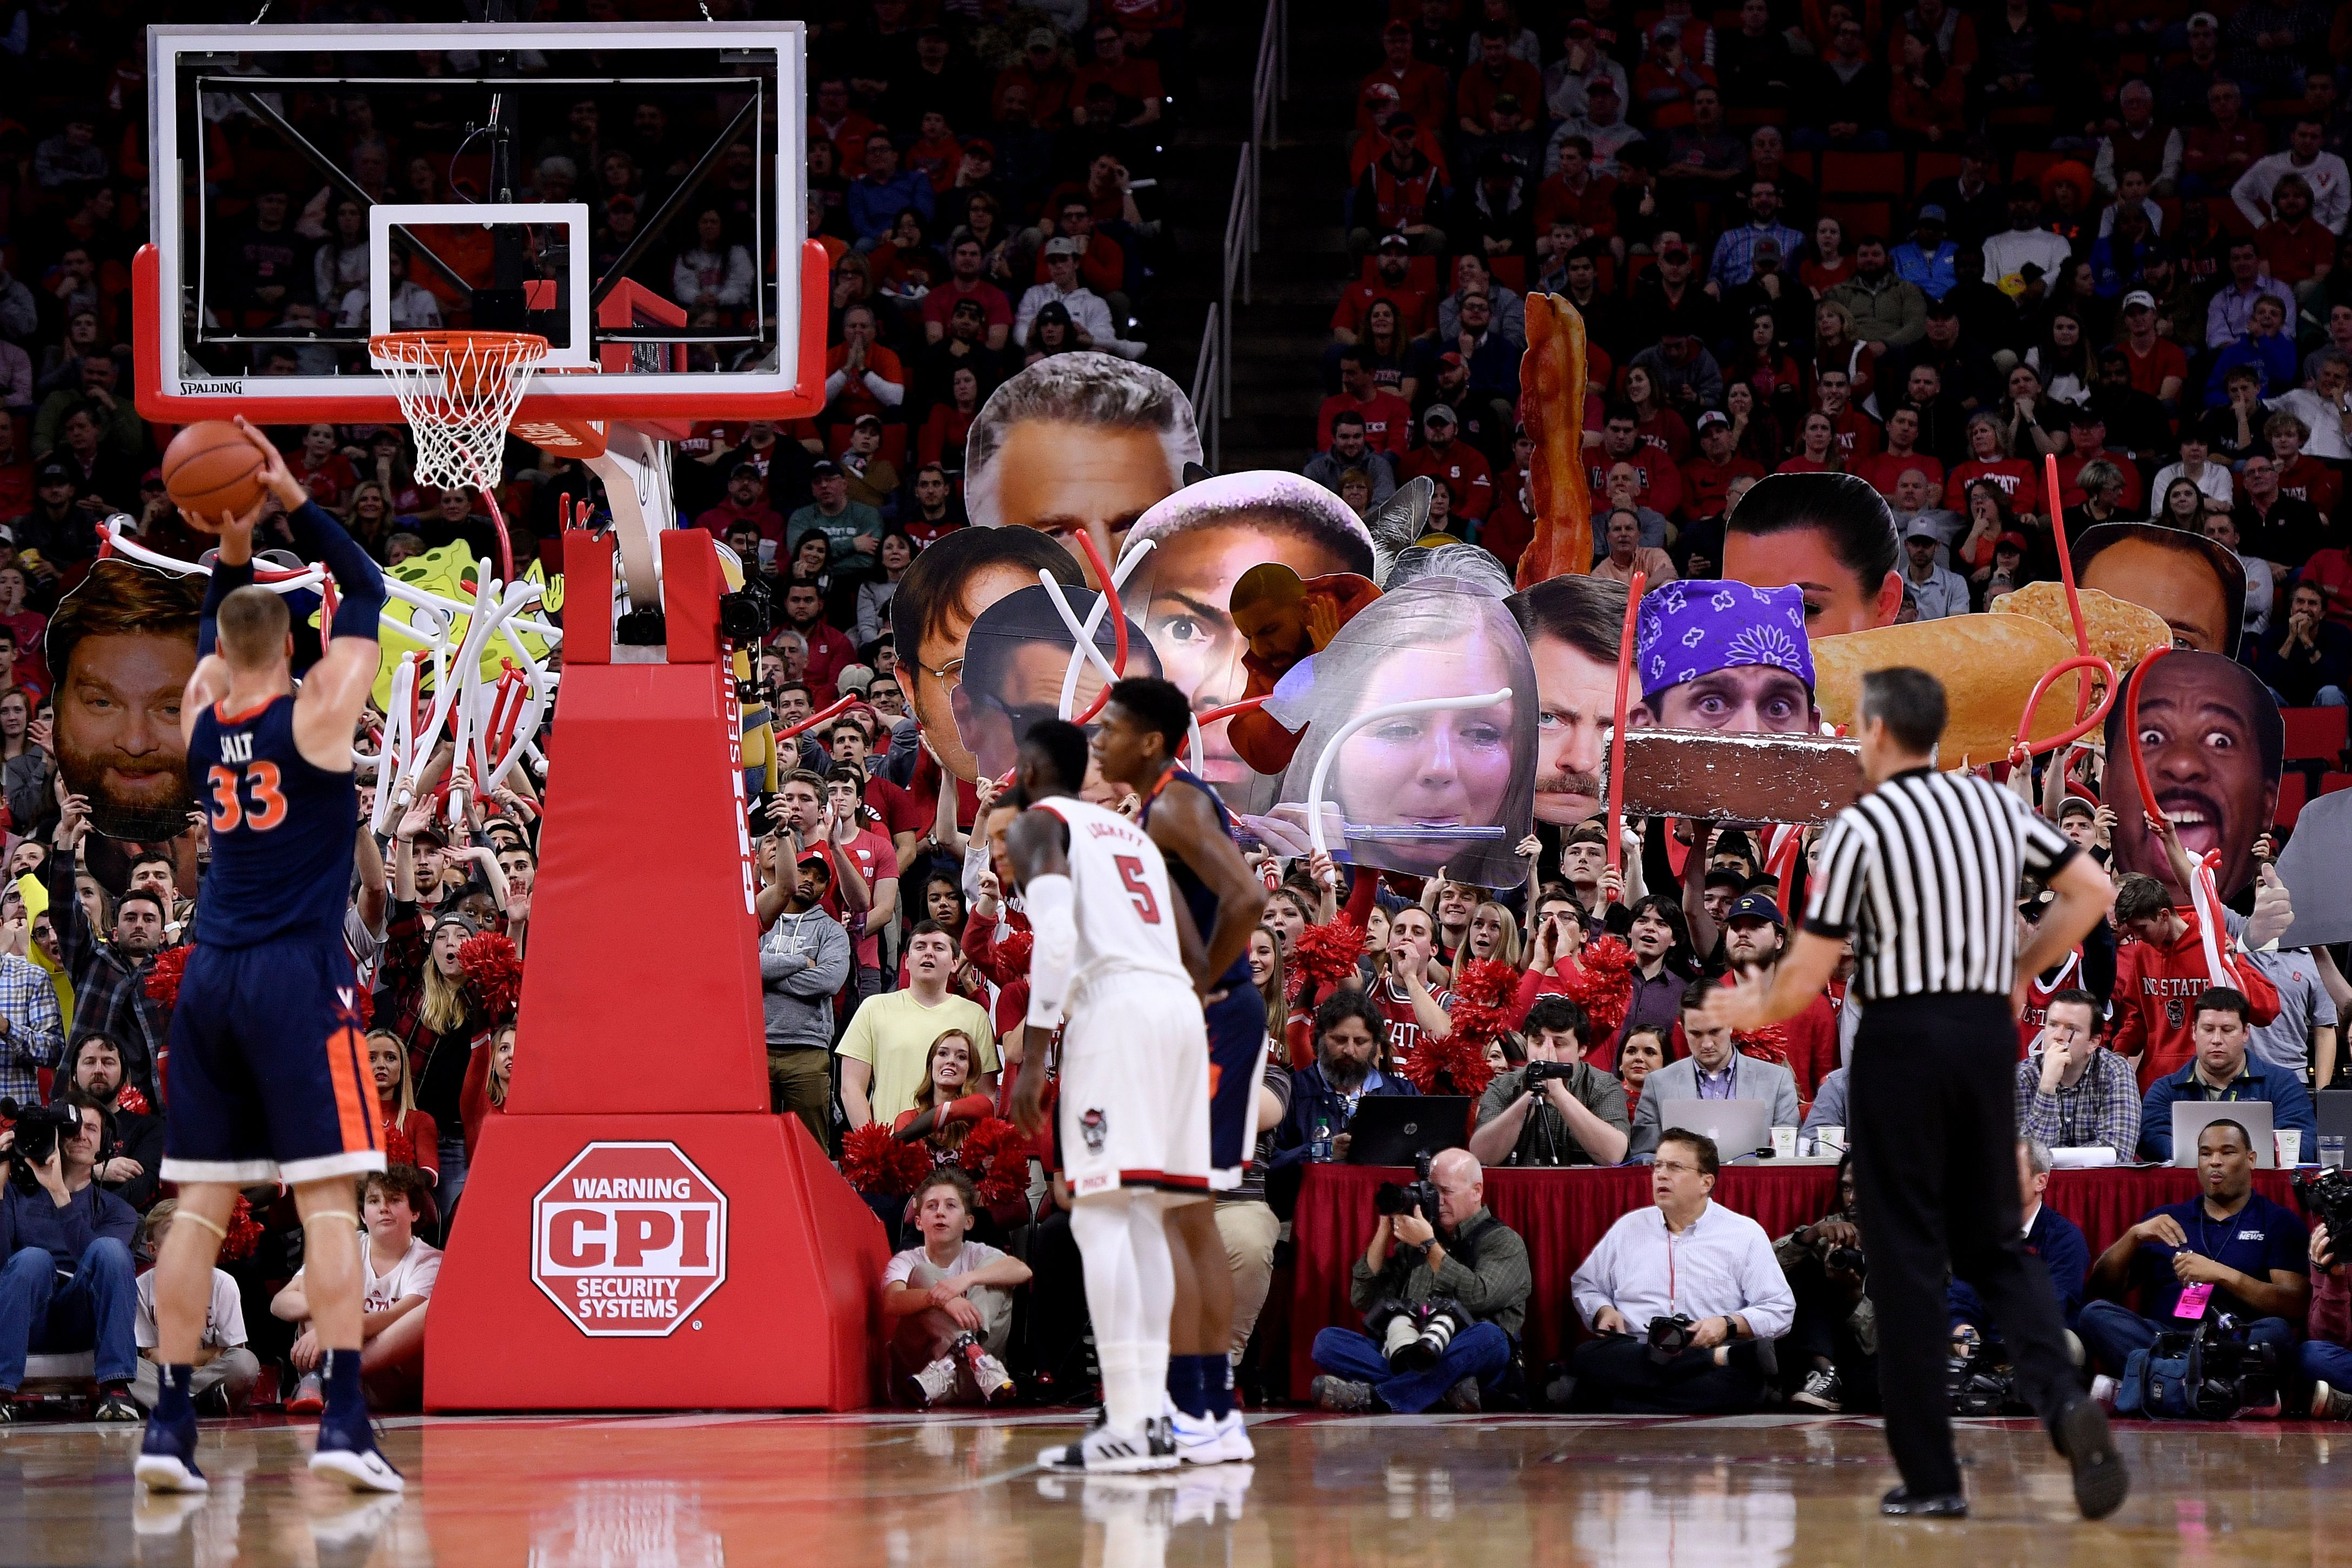 NC State fans try to distract a UVA player at the free throw line